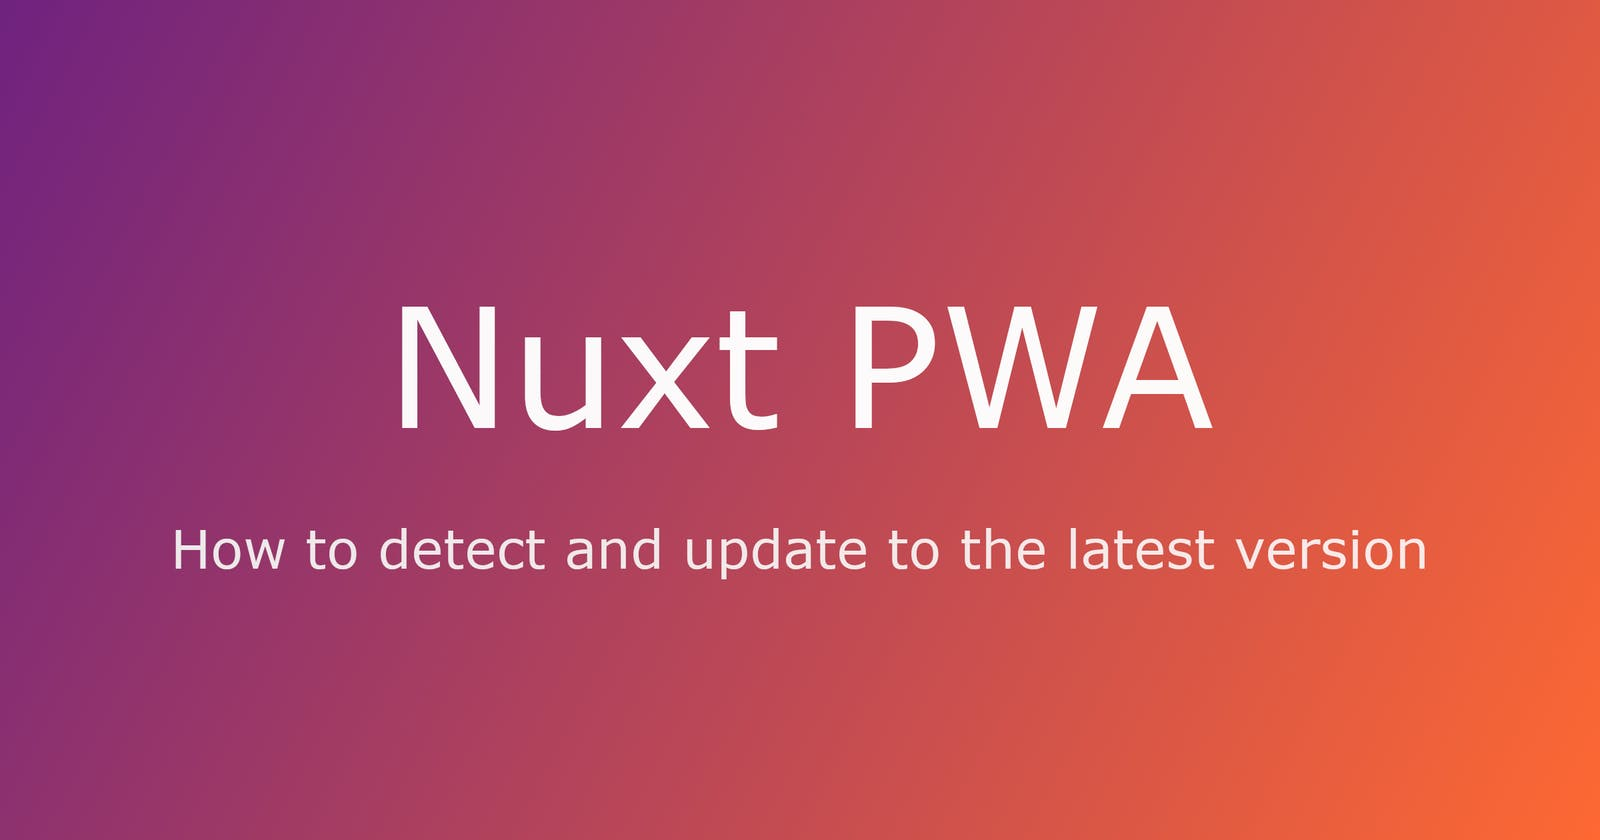 How to detect and update to the latest version with Nuxt PWA